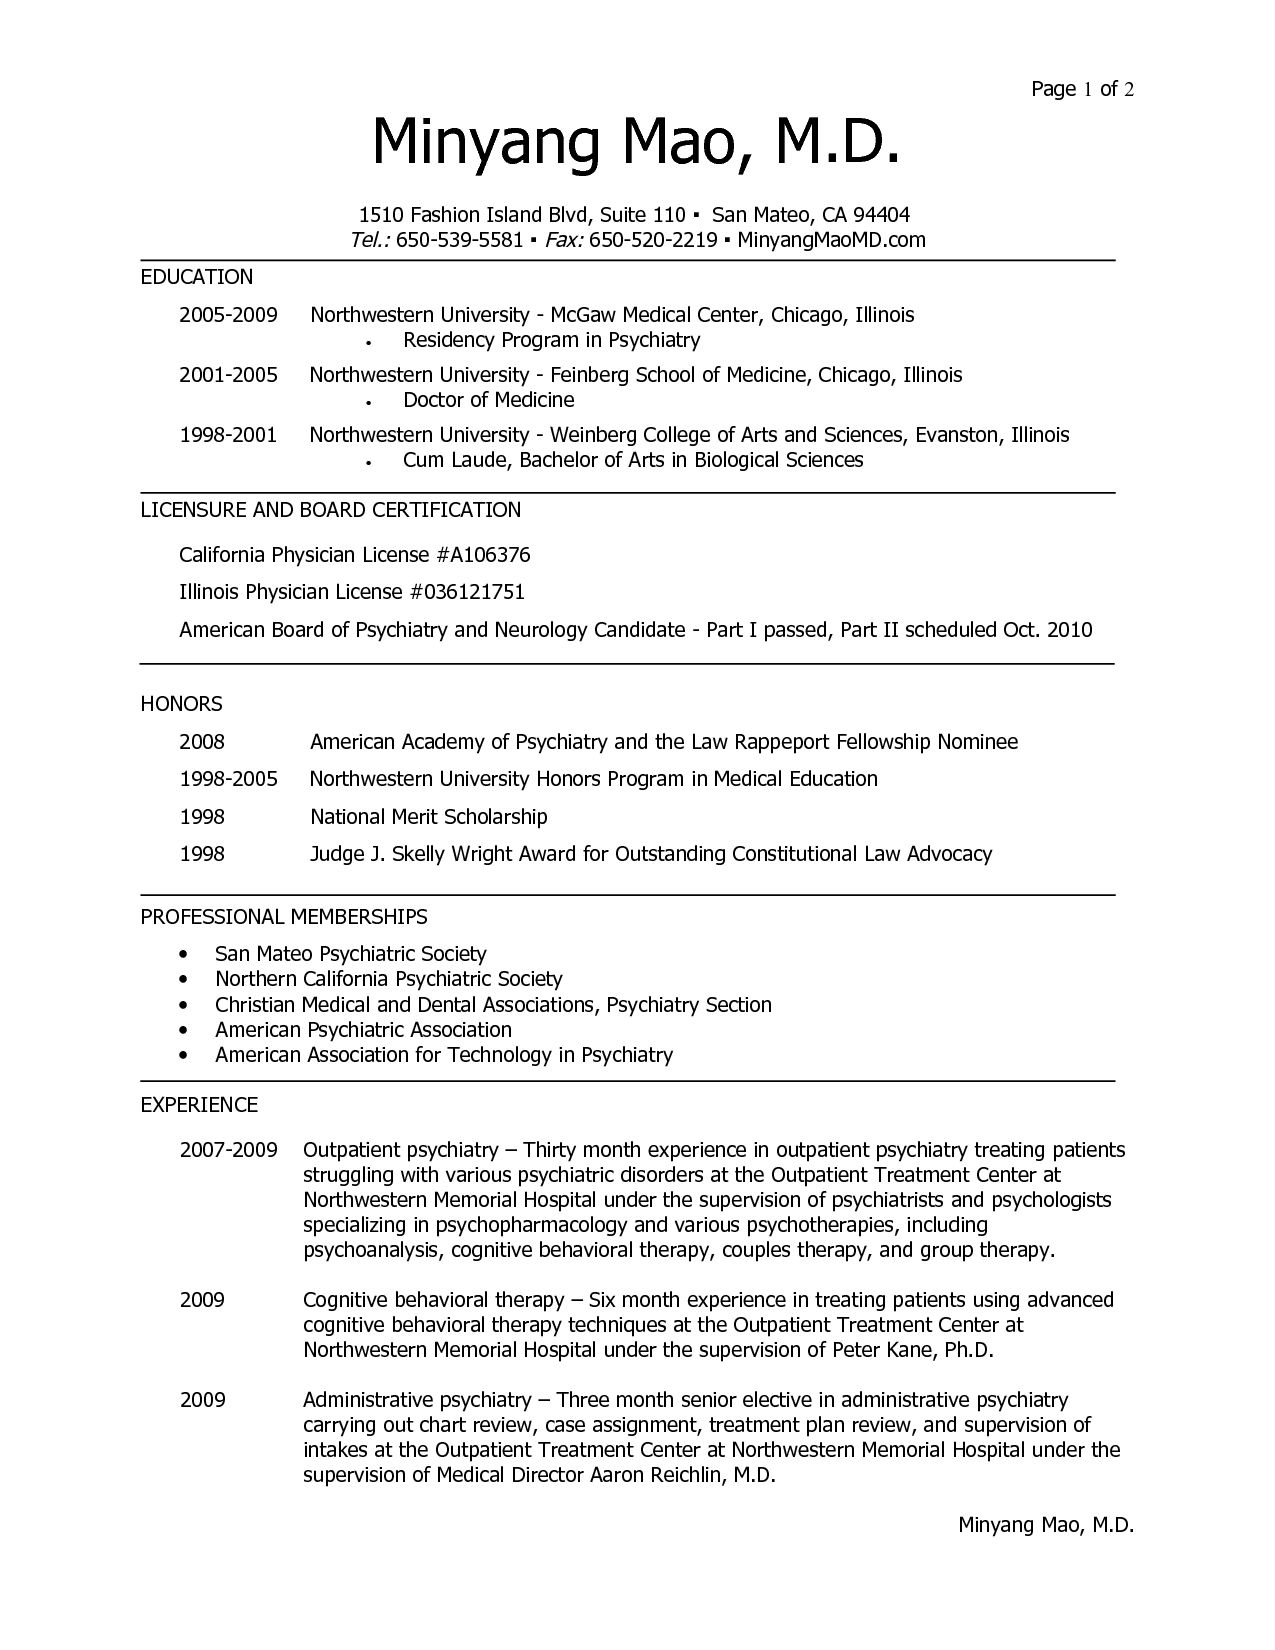 Captivating Medical School Resume Template Medical School Resume Example Fb238a1b2 With Resume For Medical School